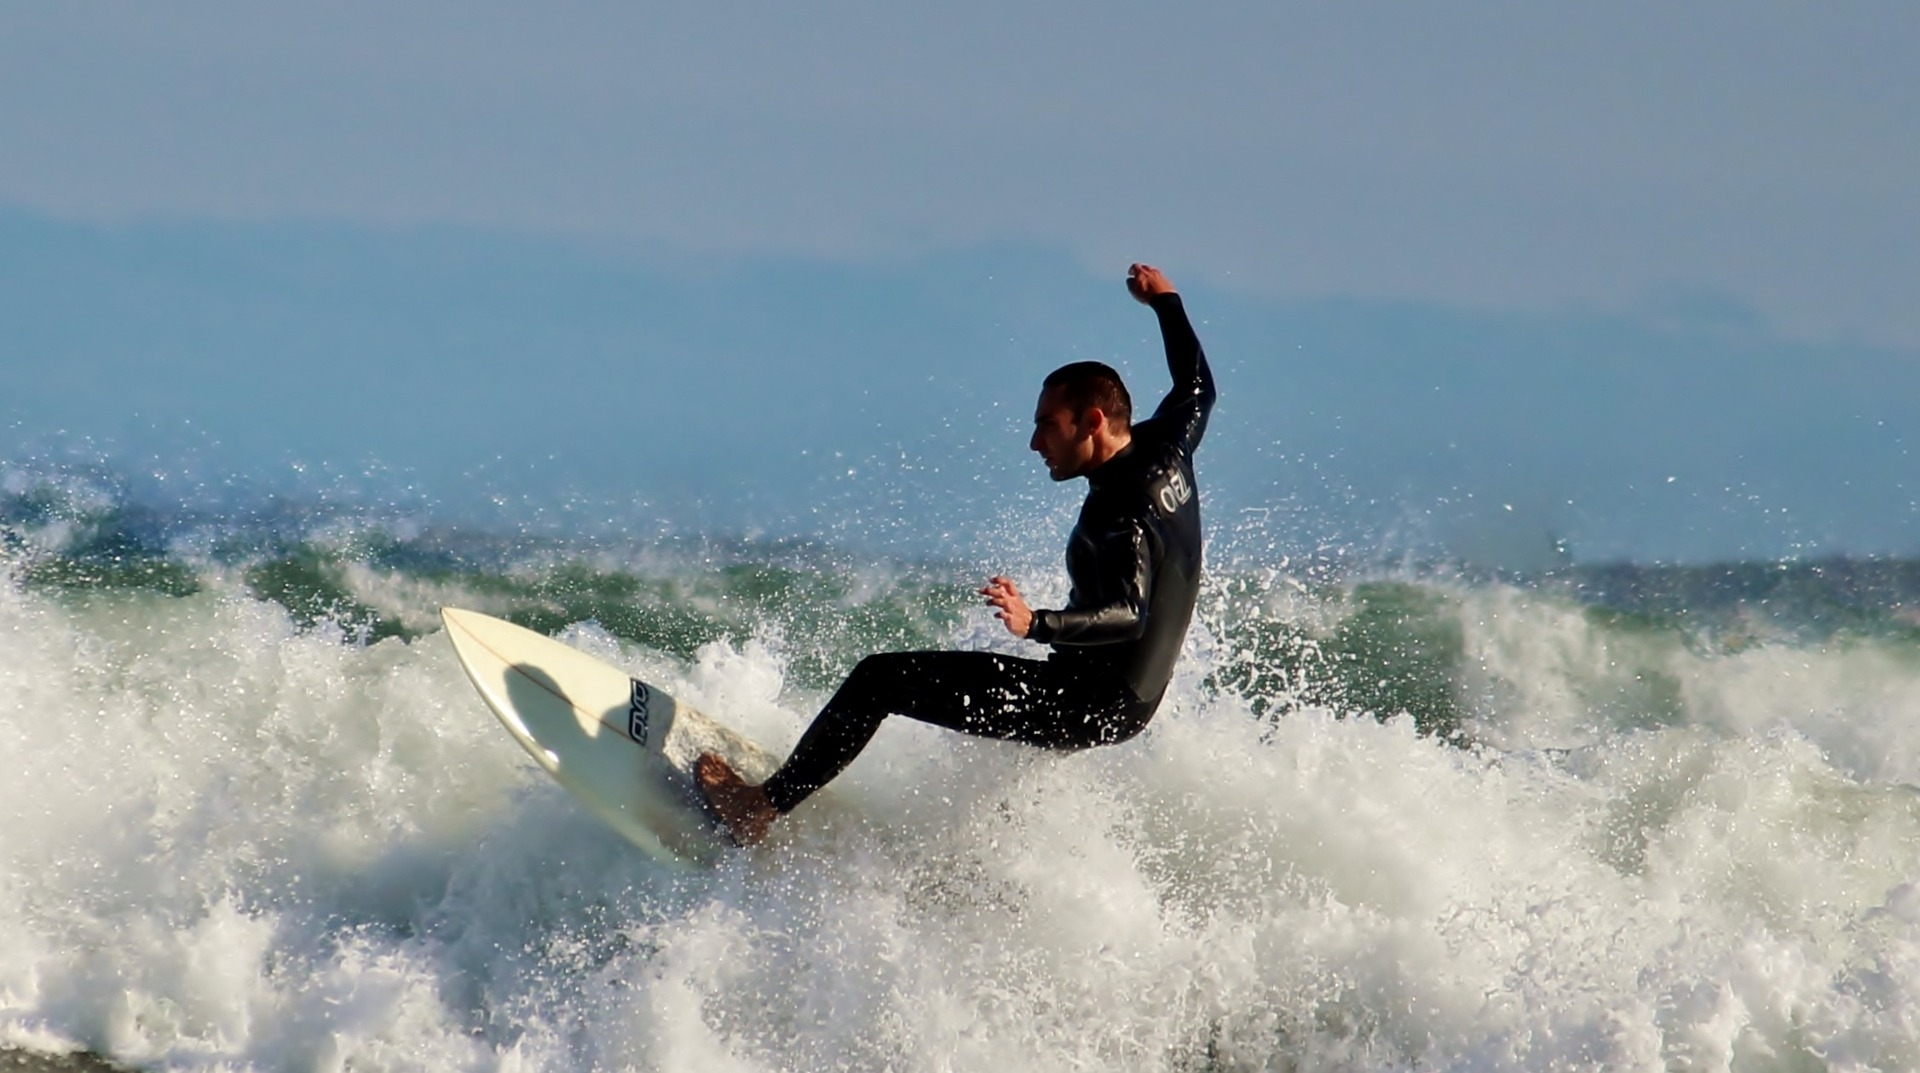 Men enjoying surfing on high waves with a comfortable wetsuit